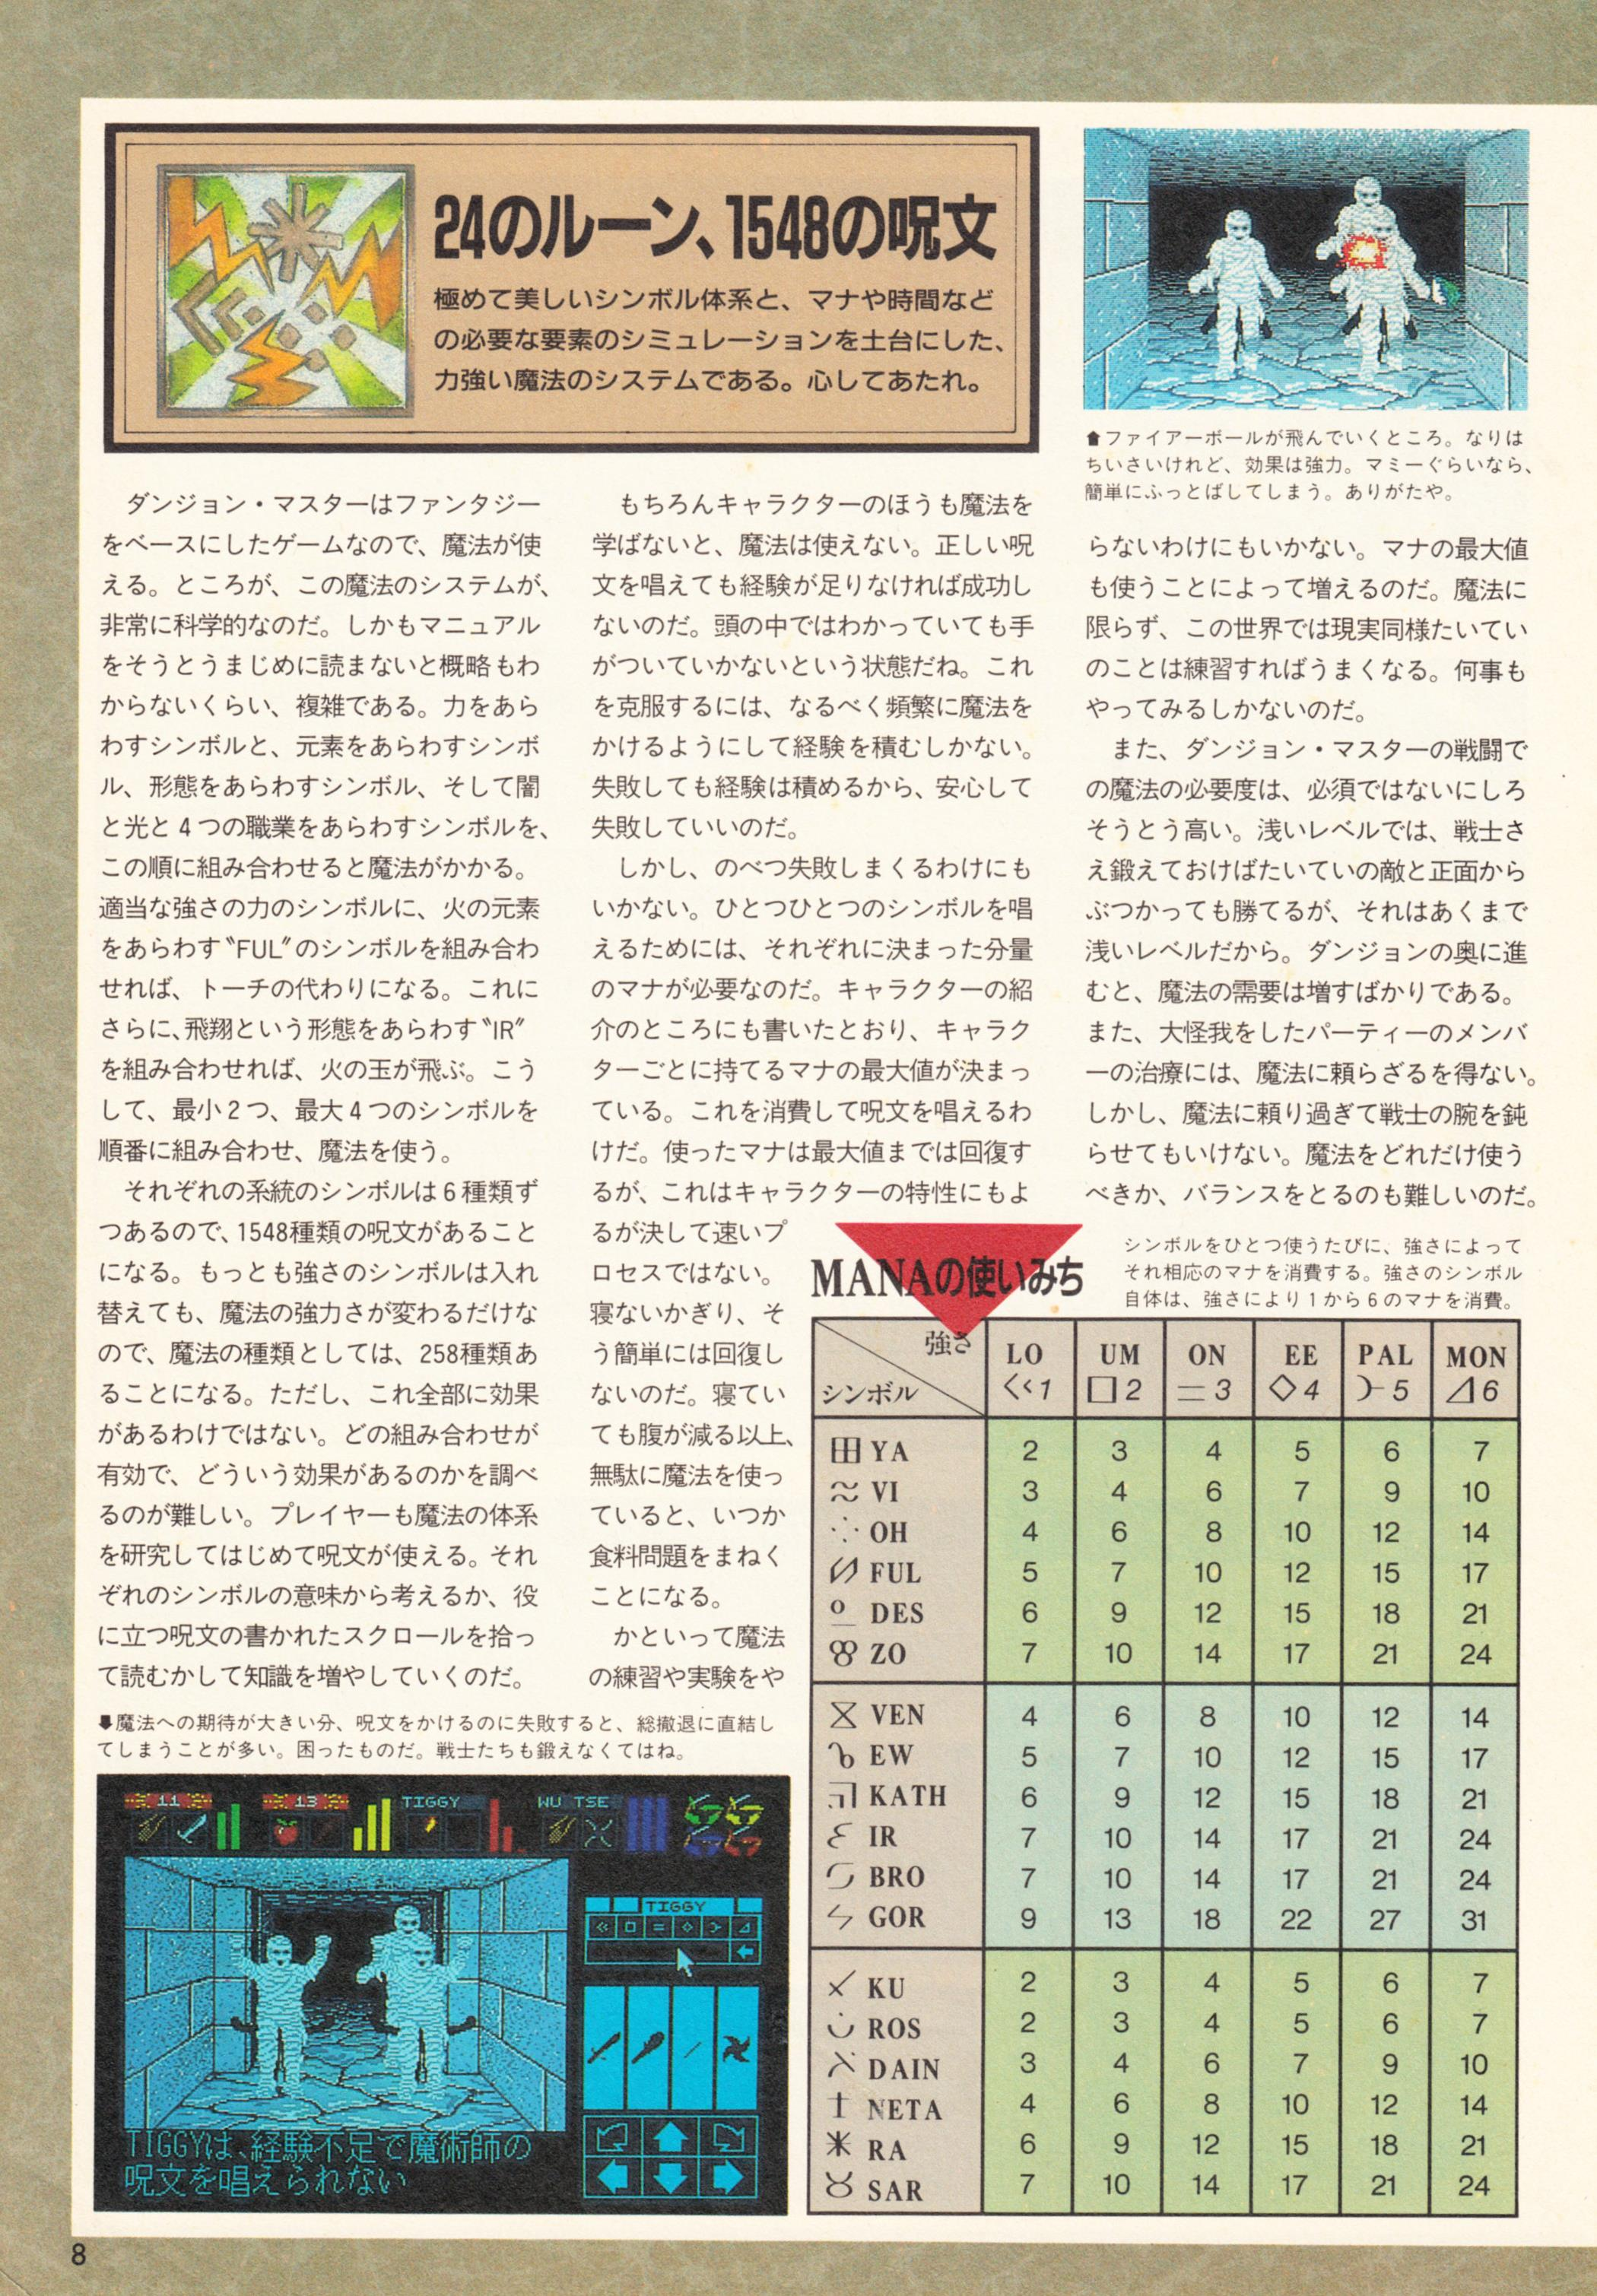 Special Supplement 2 - Dungeon Master Guide published in Japanese magazine 'Login', Vol 9 No 3 02 February 1990, Page 8